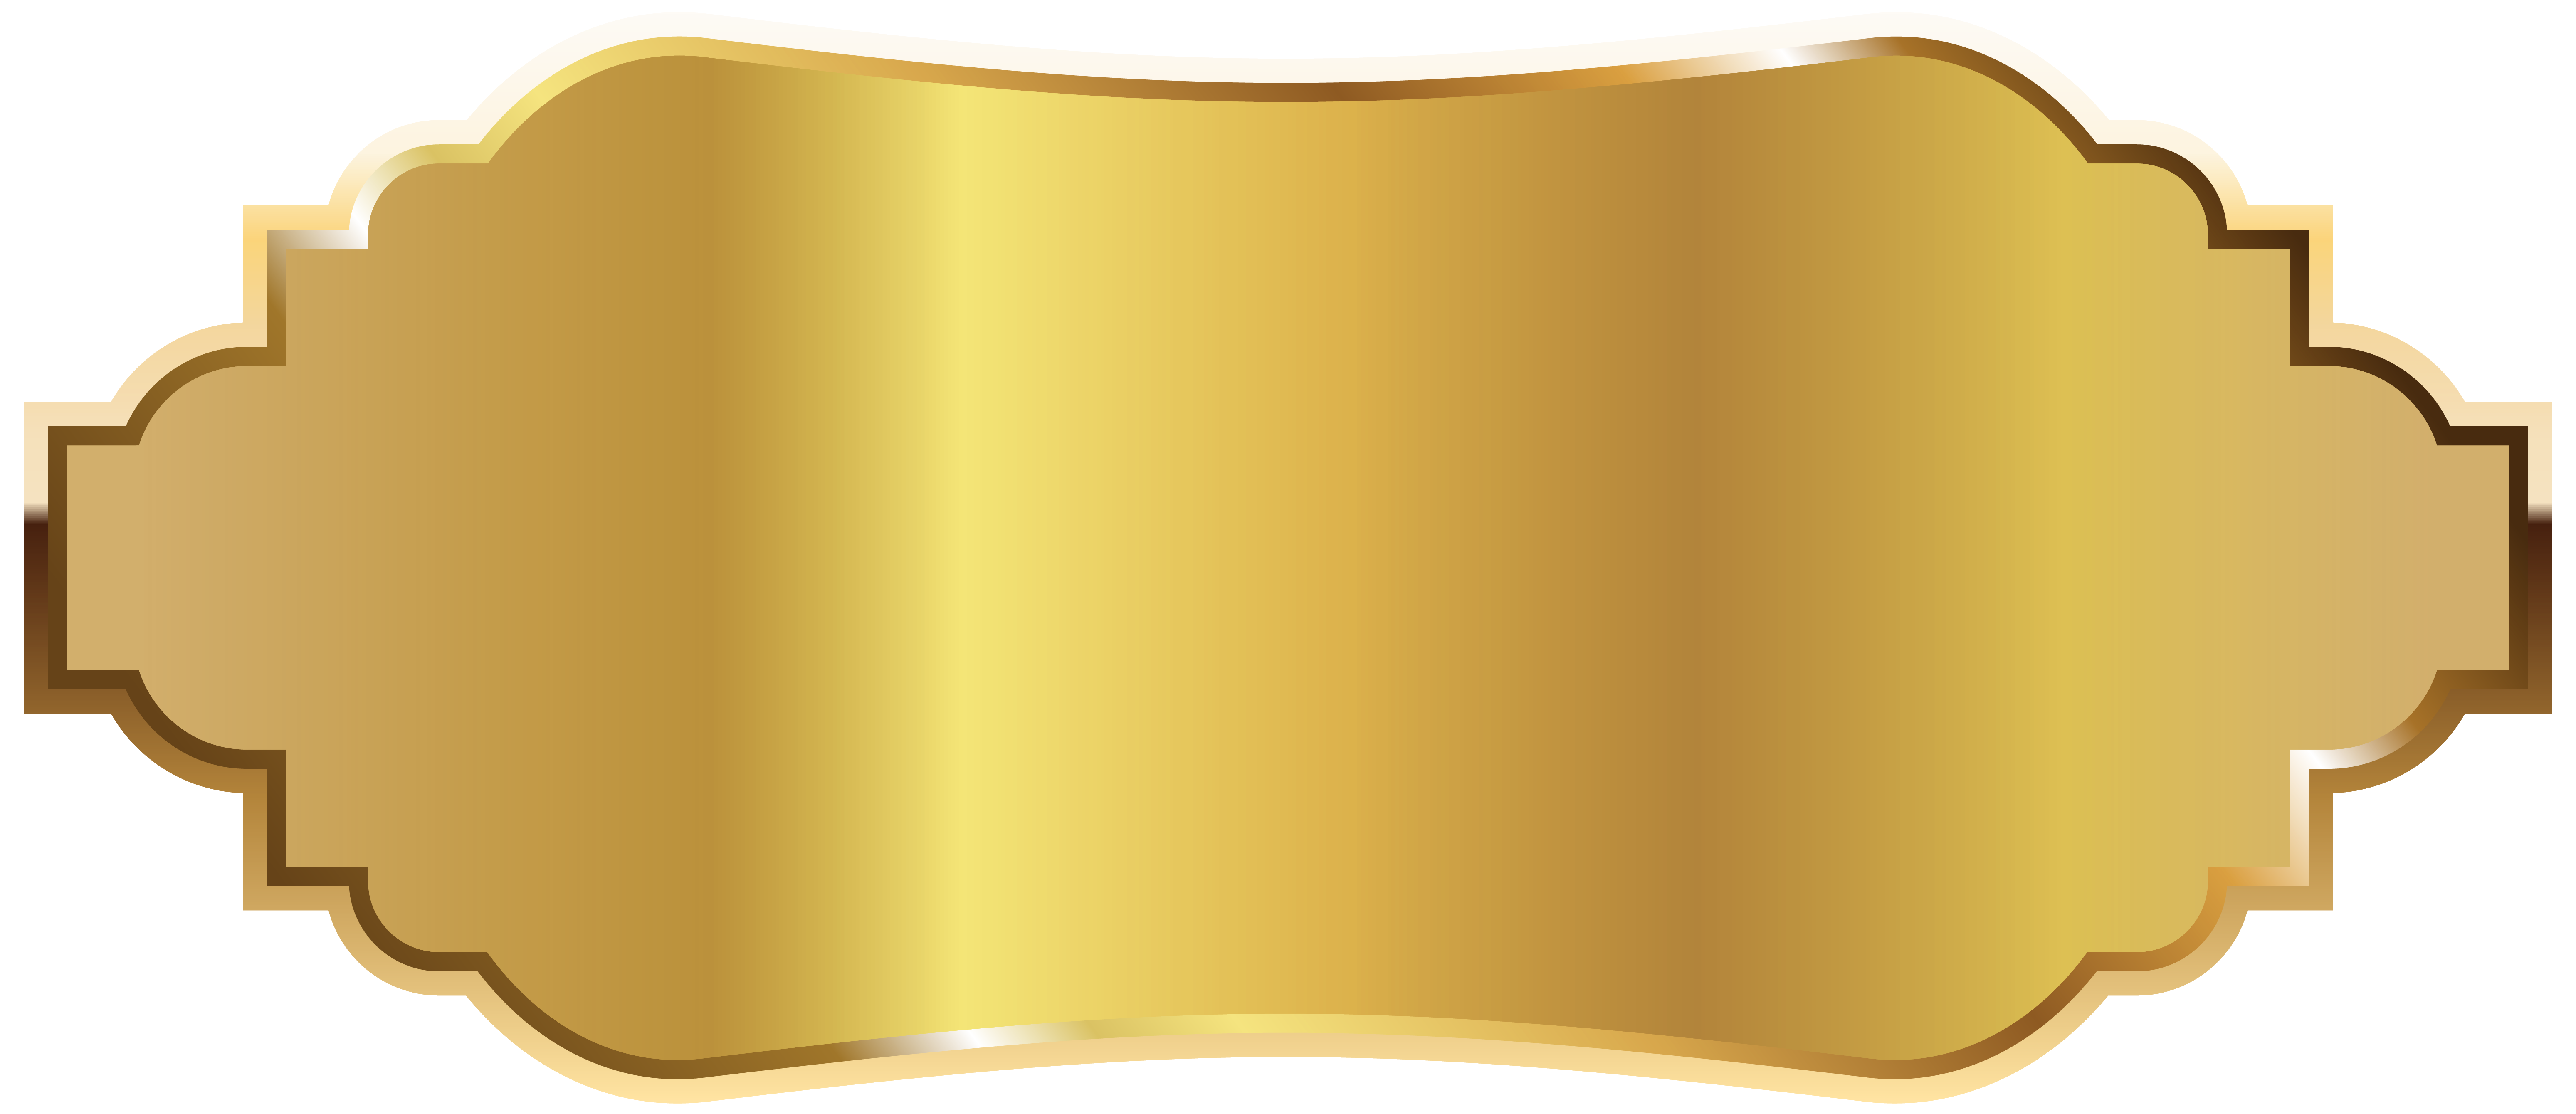 Golden clipart. Label png picture gallery